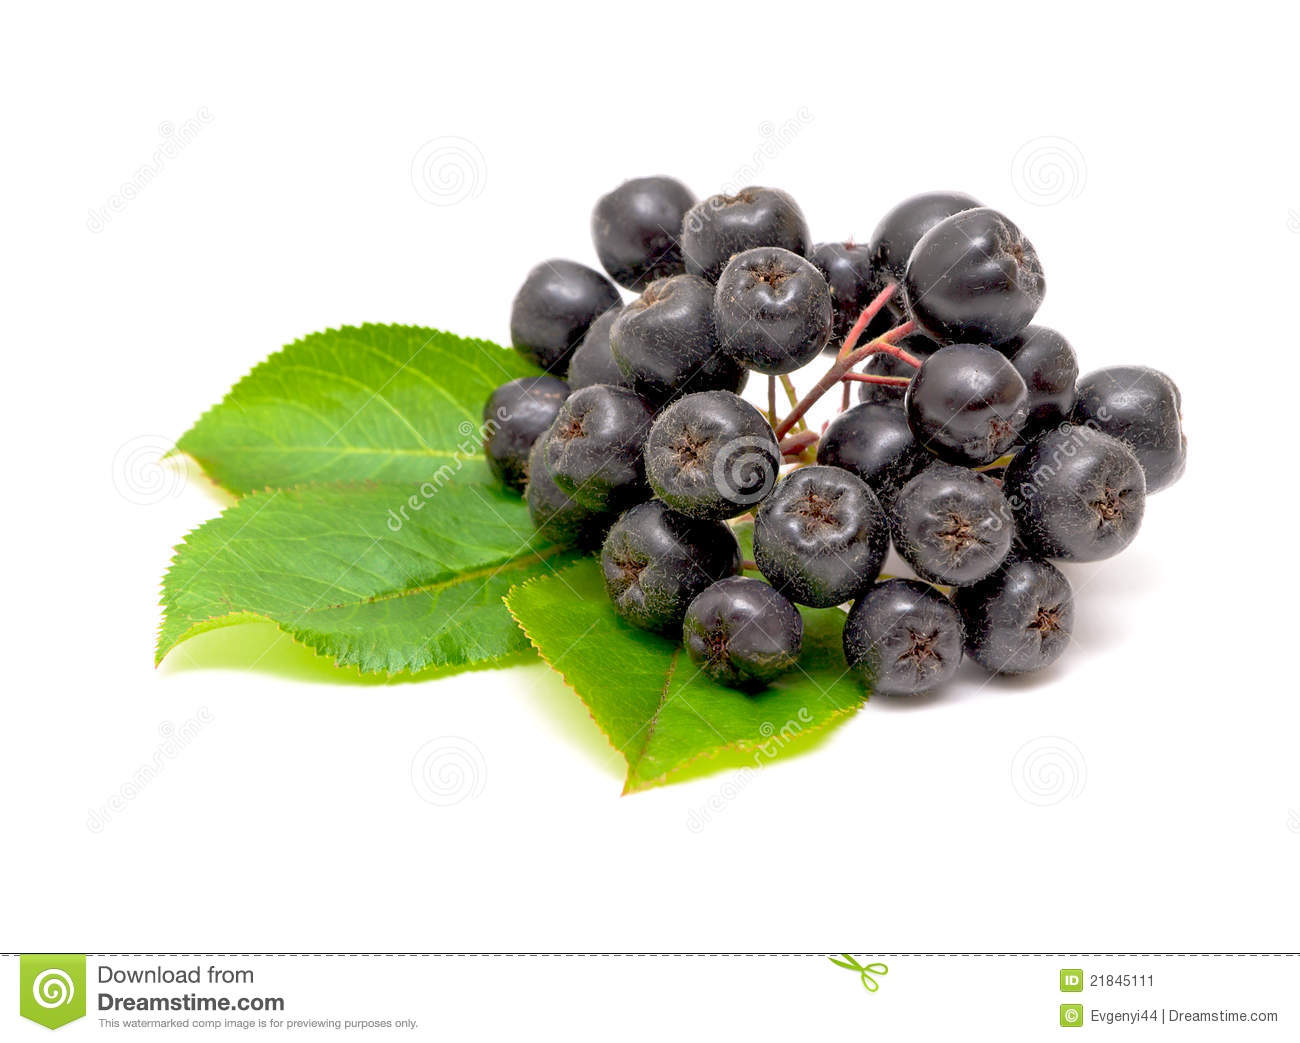 Image result for image of aronia berry